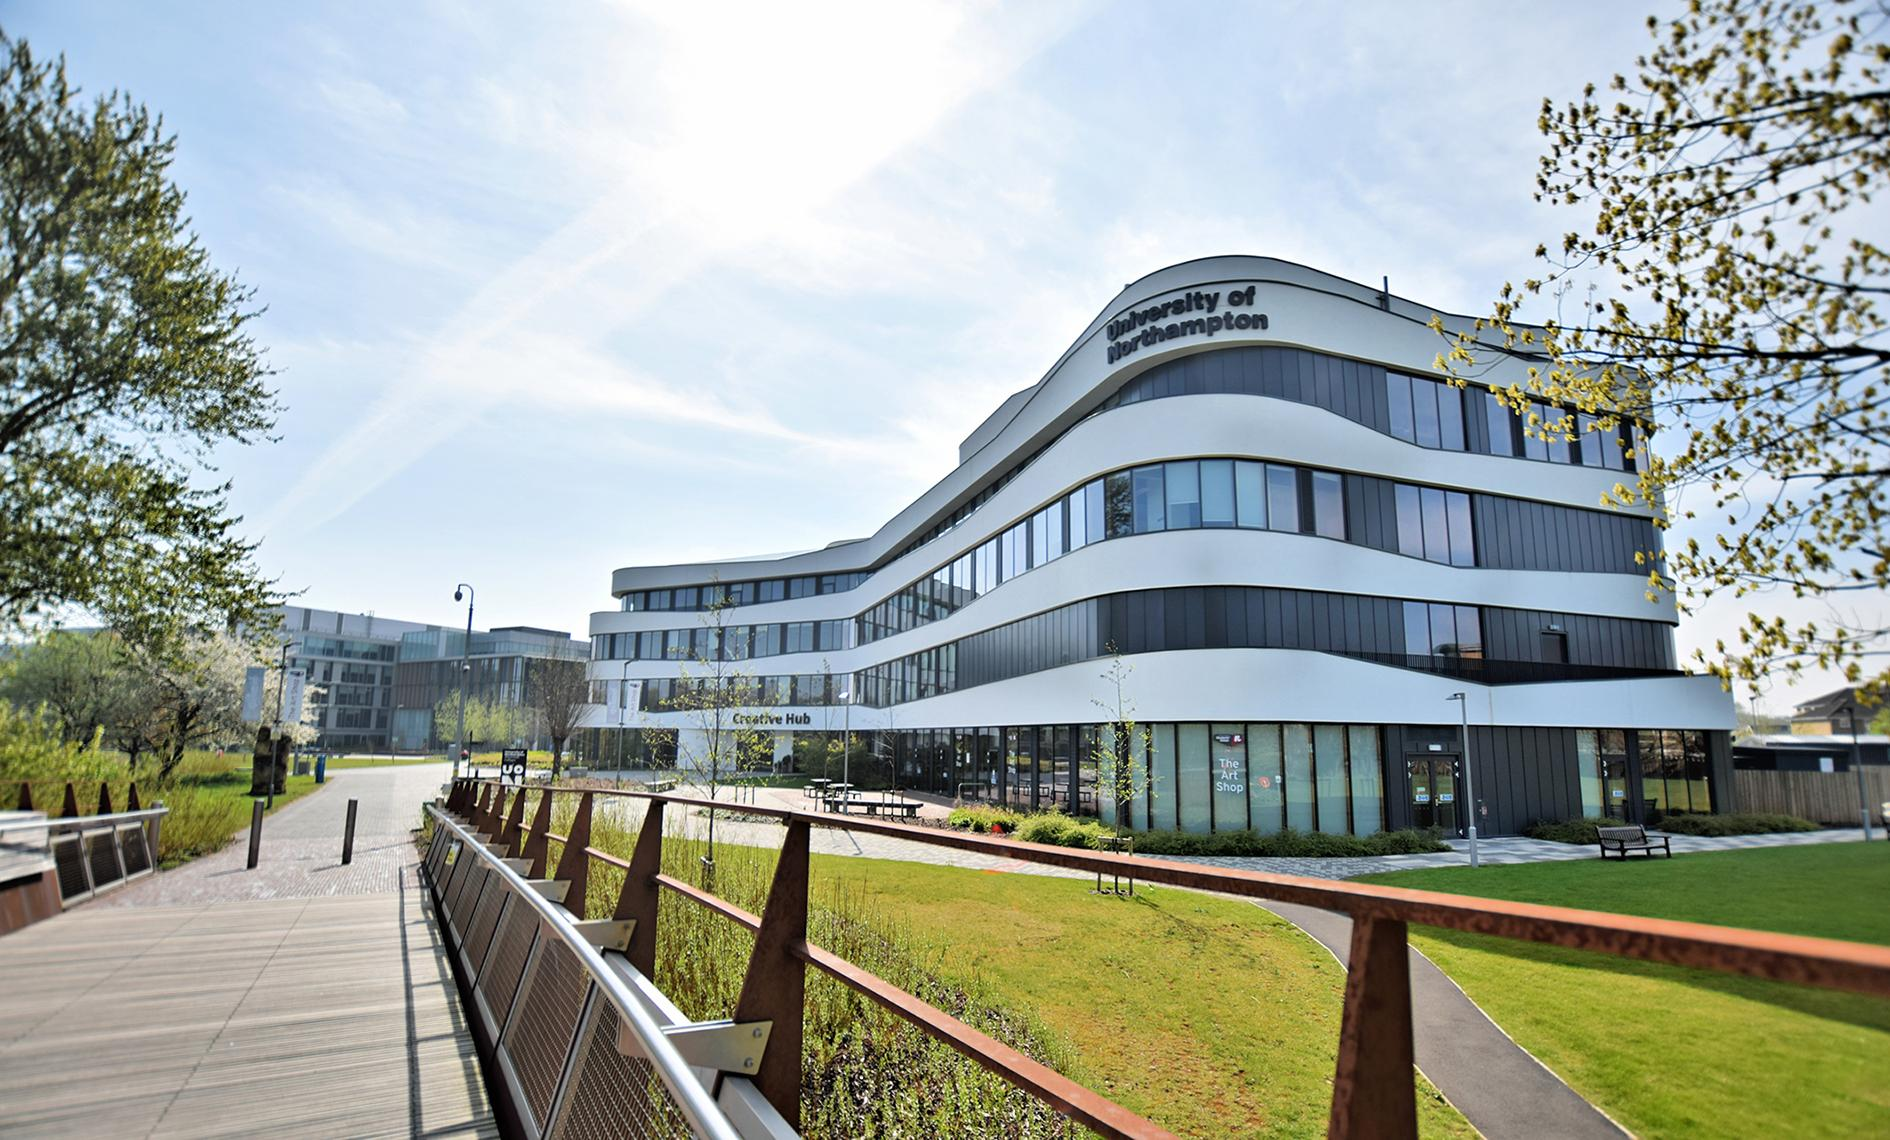 University of Northampton benefits from PTSG services